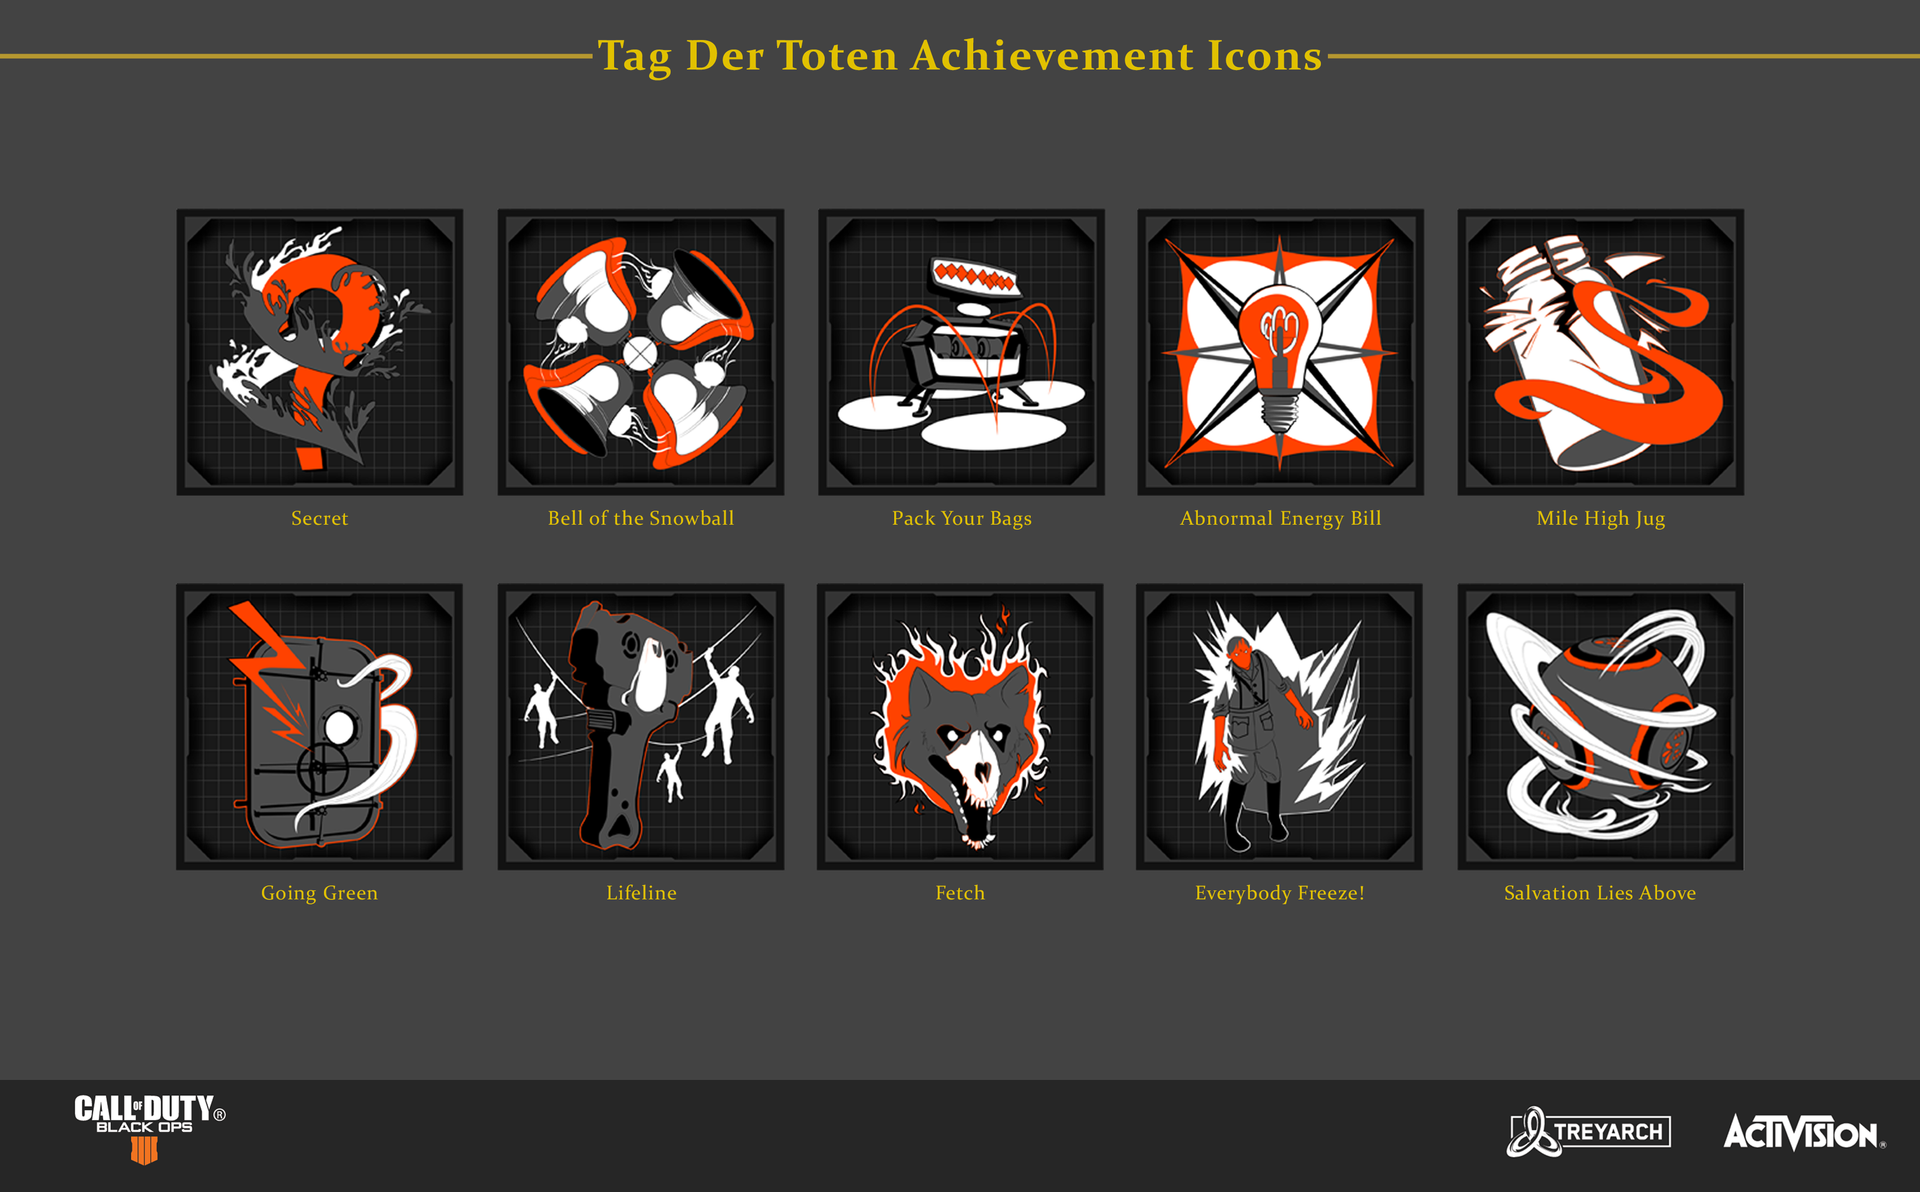 Tag Der Toten Achievement Icons